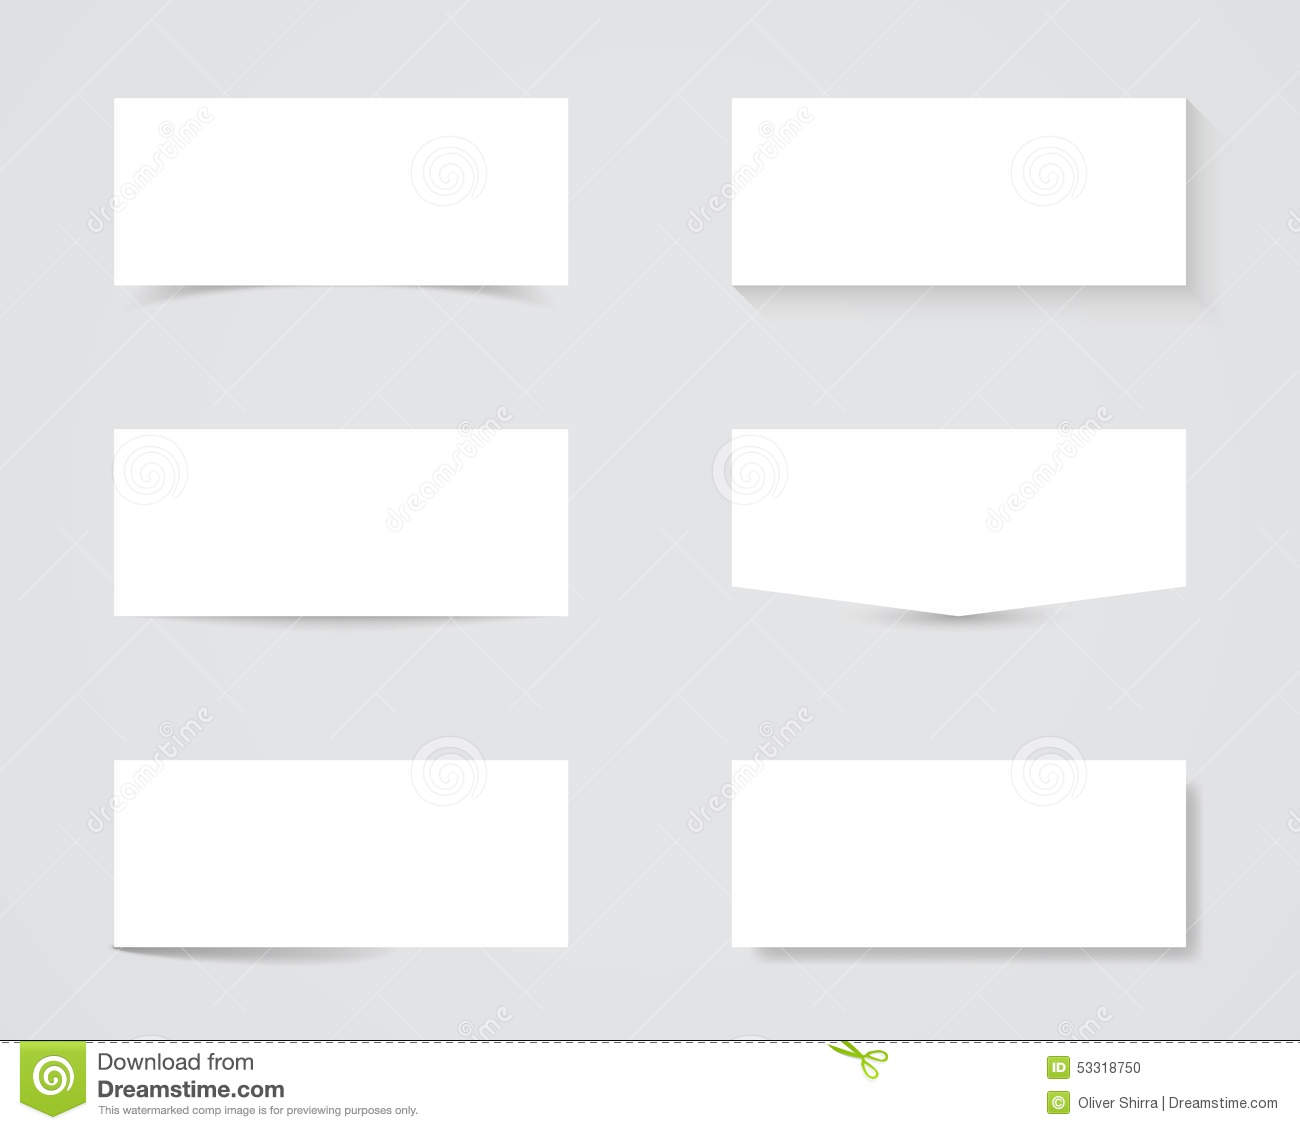 blank text box shadows stock vector illustration of business 53318750